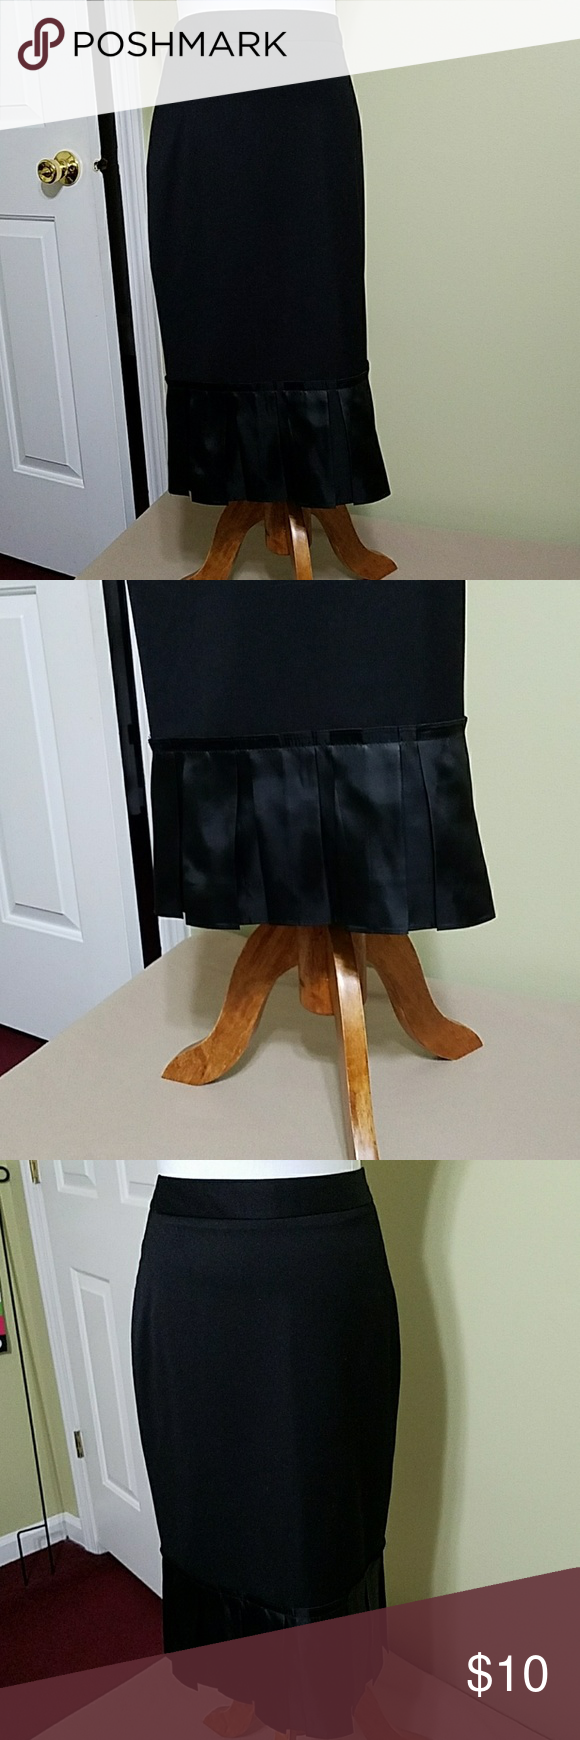 Simply Vera Vera Wang black skirt Simply Vera Vera Wang black skirt.  In great used condition.  Length is about 24 inches.  Waist is about 31 inches.  Body is made of 72% polyester and 28% rayon. Trim is made of 100% polyester. Simply Vera Vera Wang Skirts